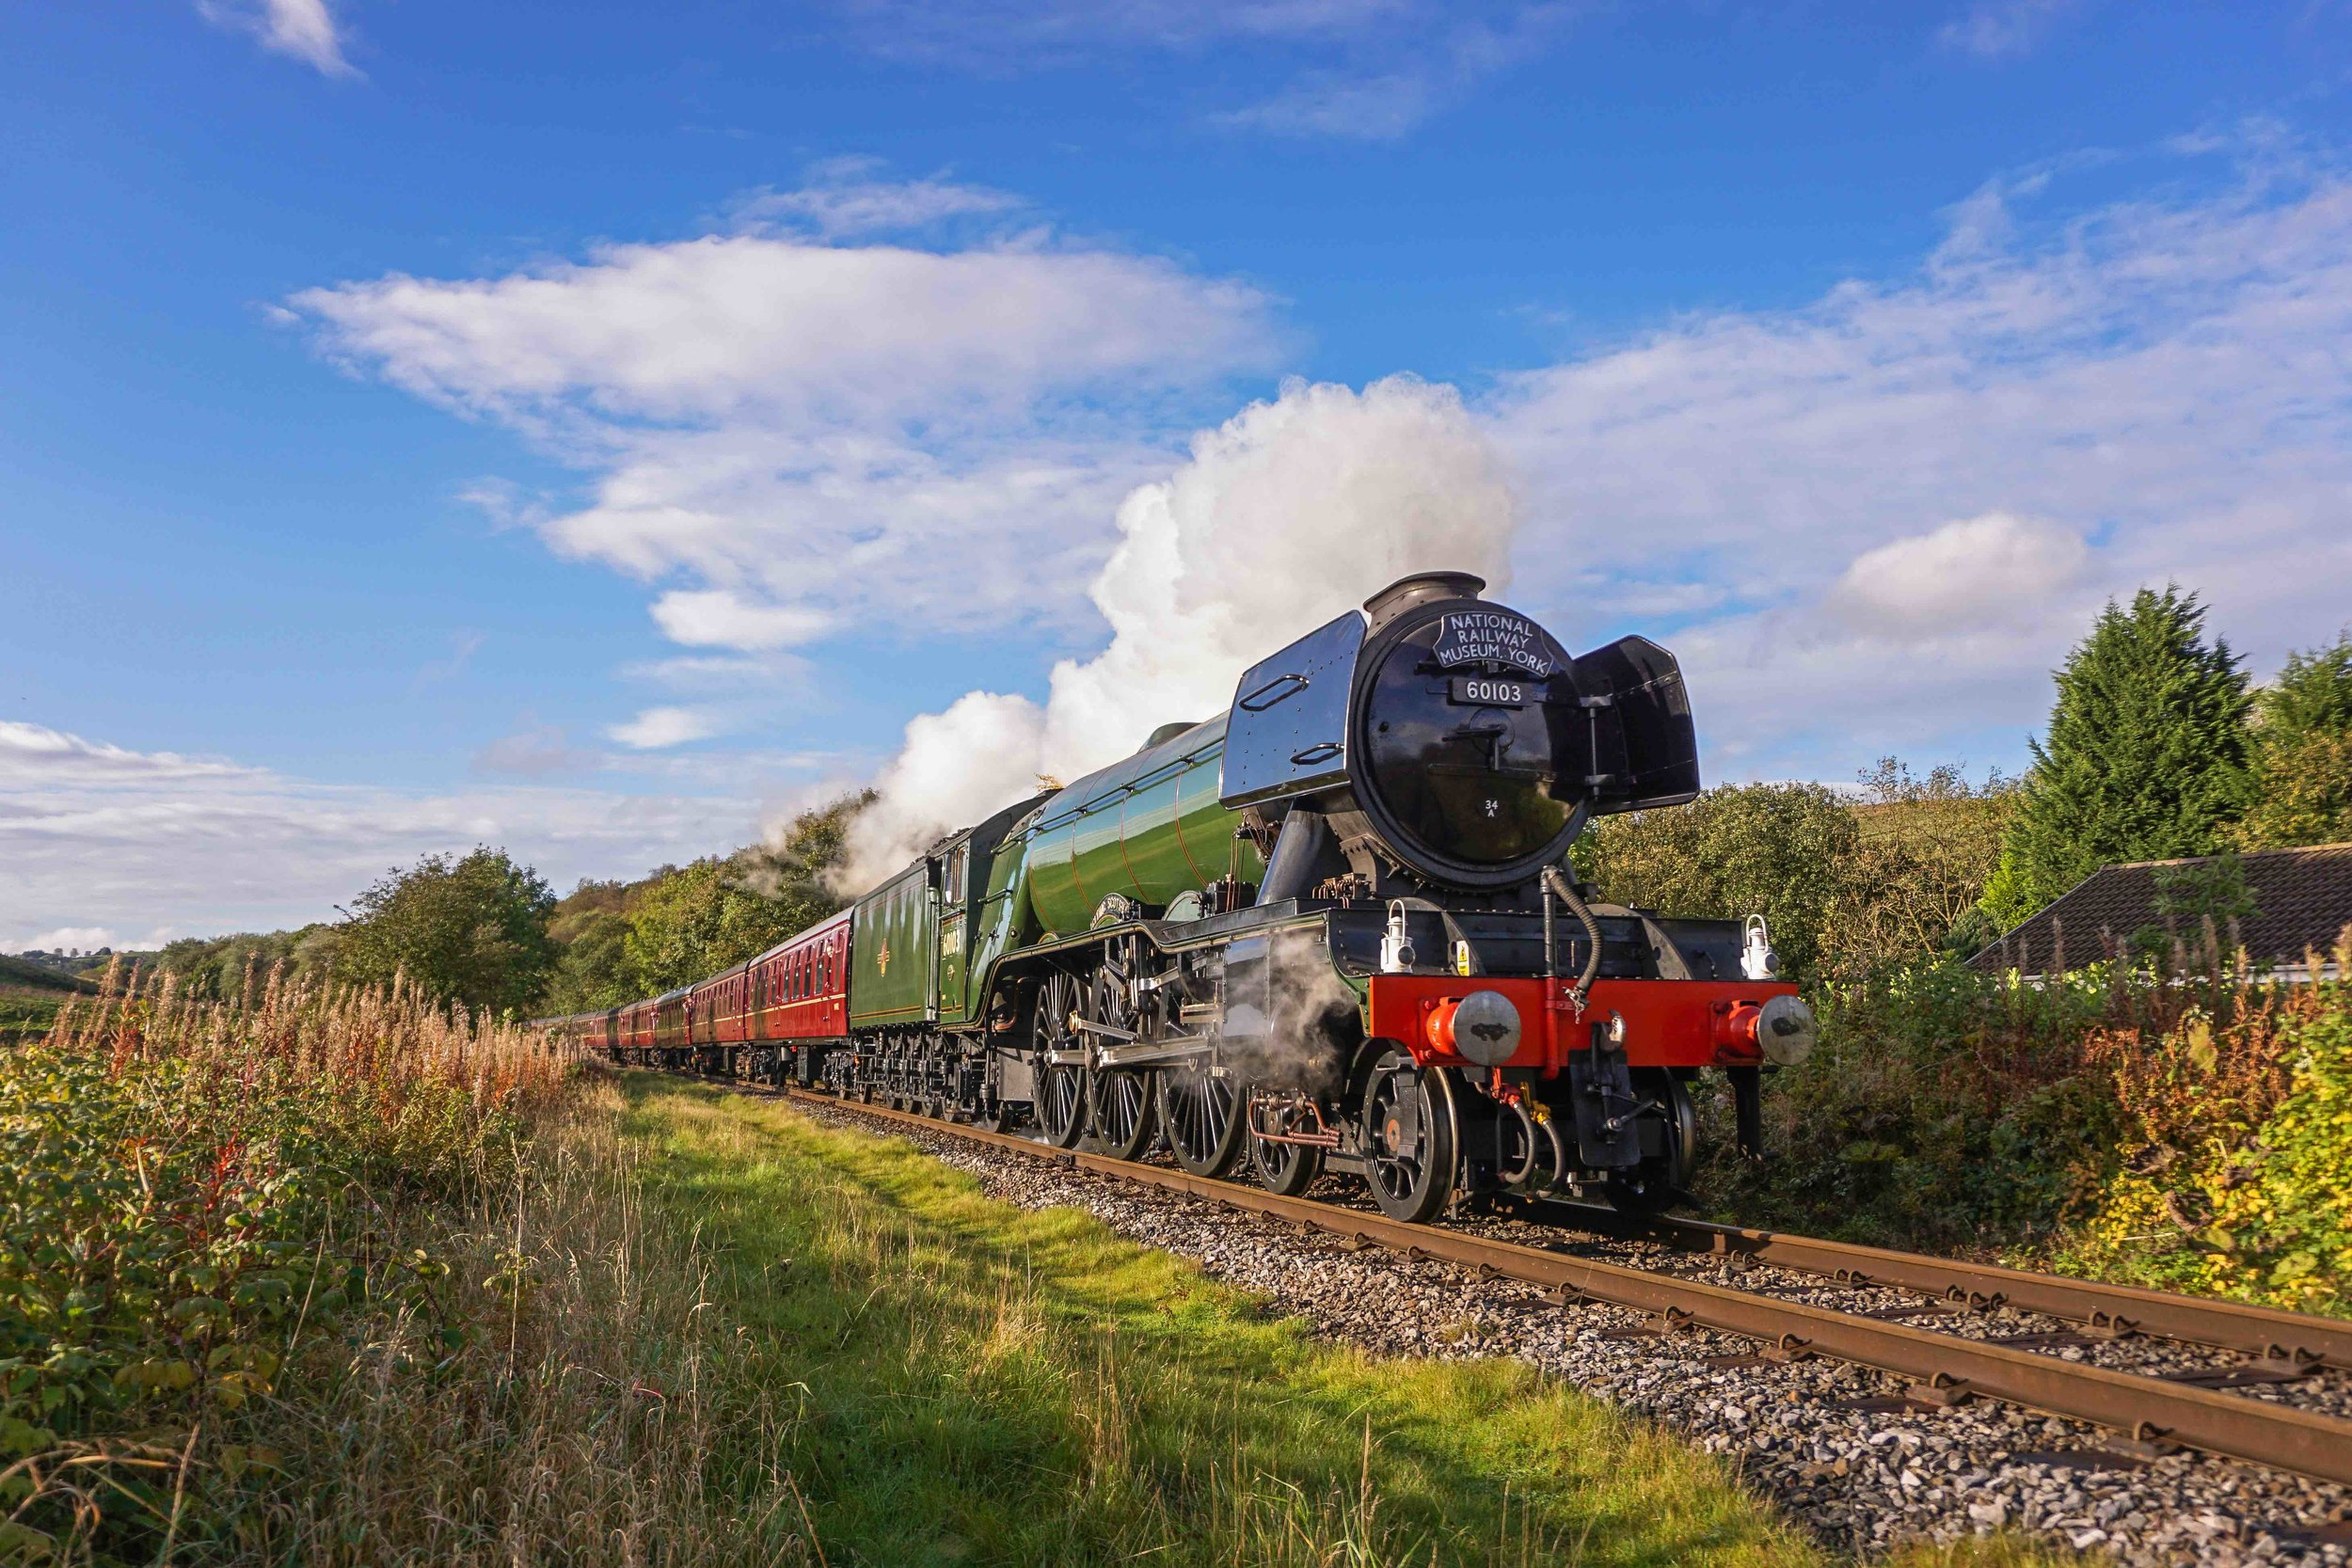 Confirmed to make a return visit to the East Lancashire Railway later this year, 'A3' No. 60103  Flying Scotsman  travels over the ELR on a visit in 2016. LIAM BARNES